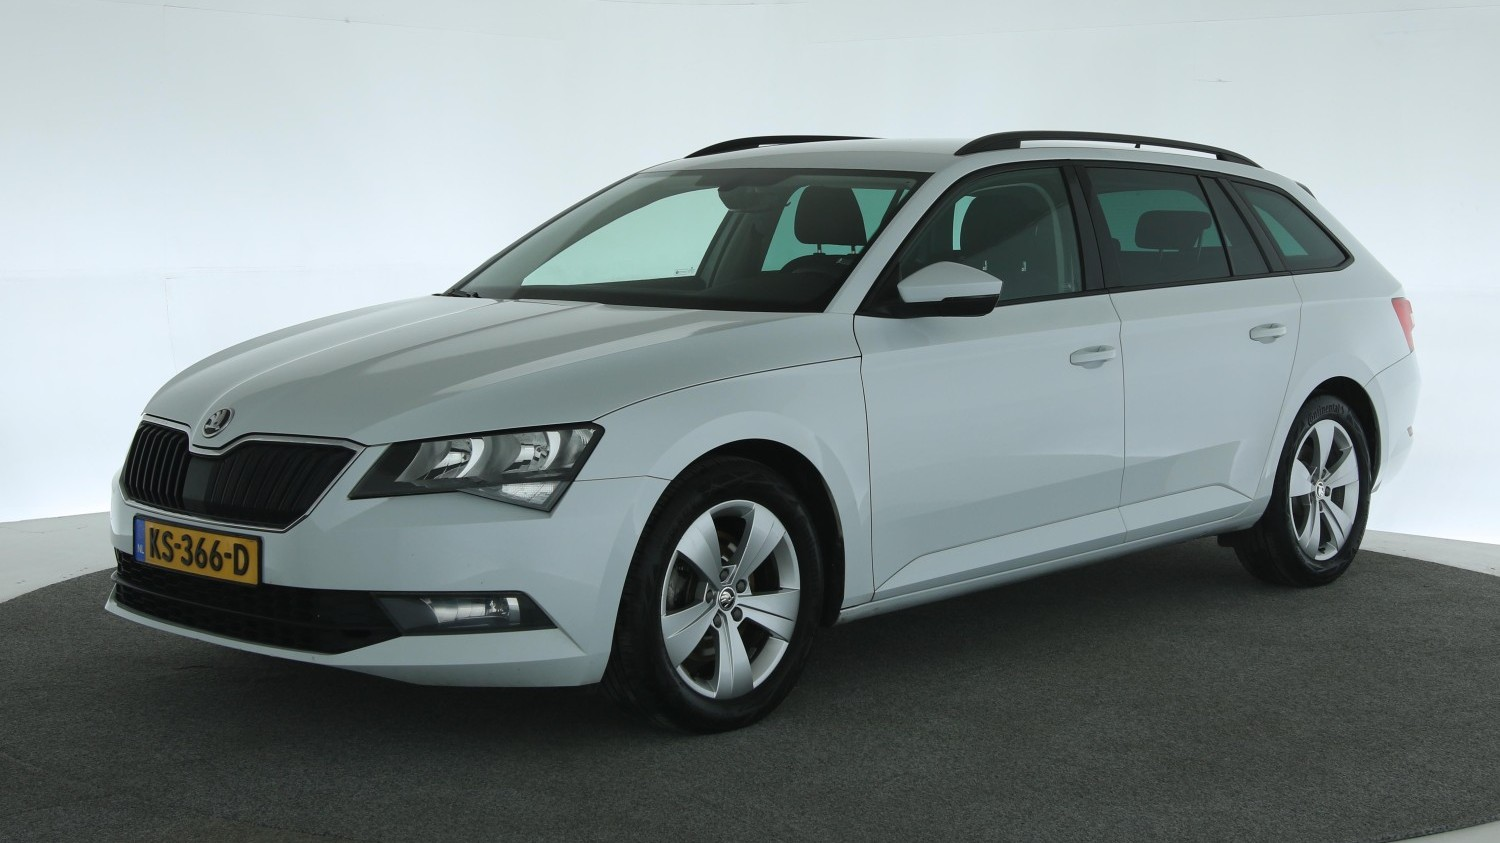 Skoda Superb Station 2016 KS-366-D 1